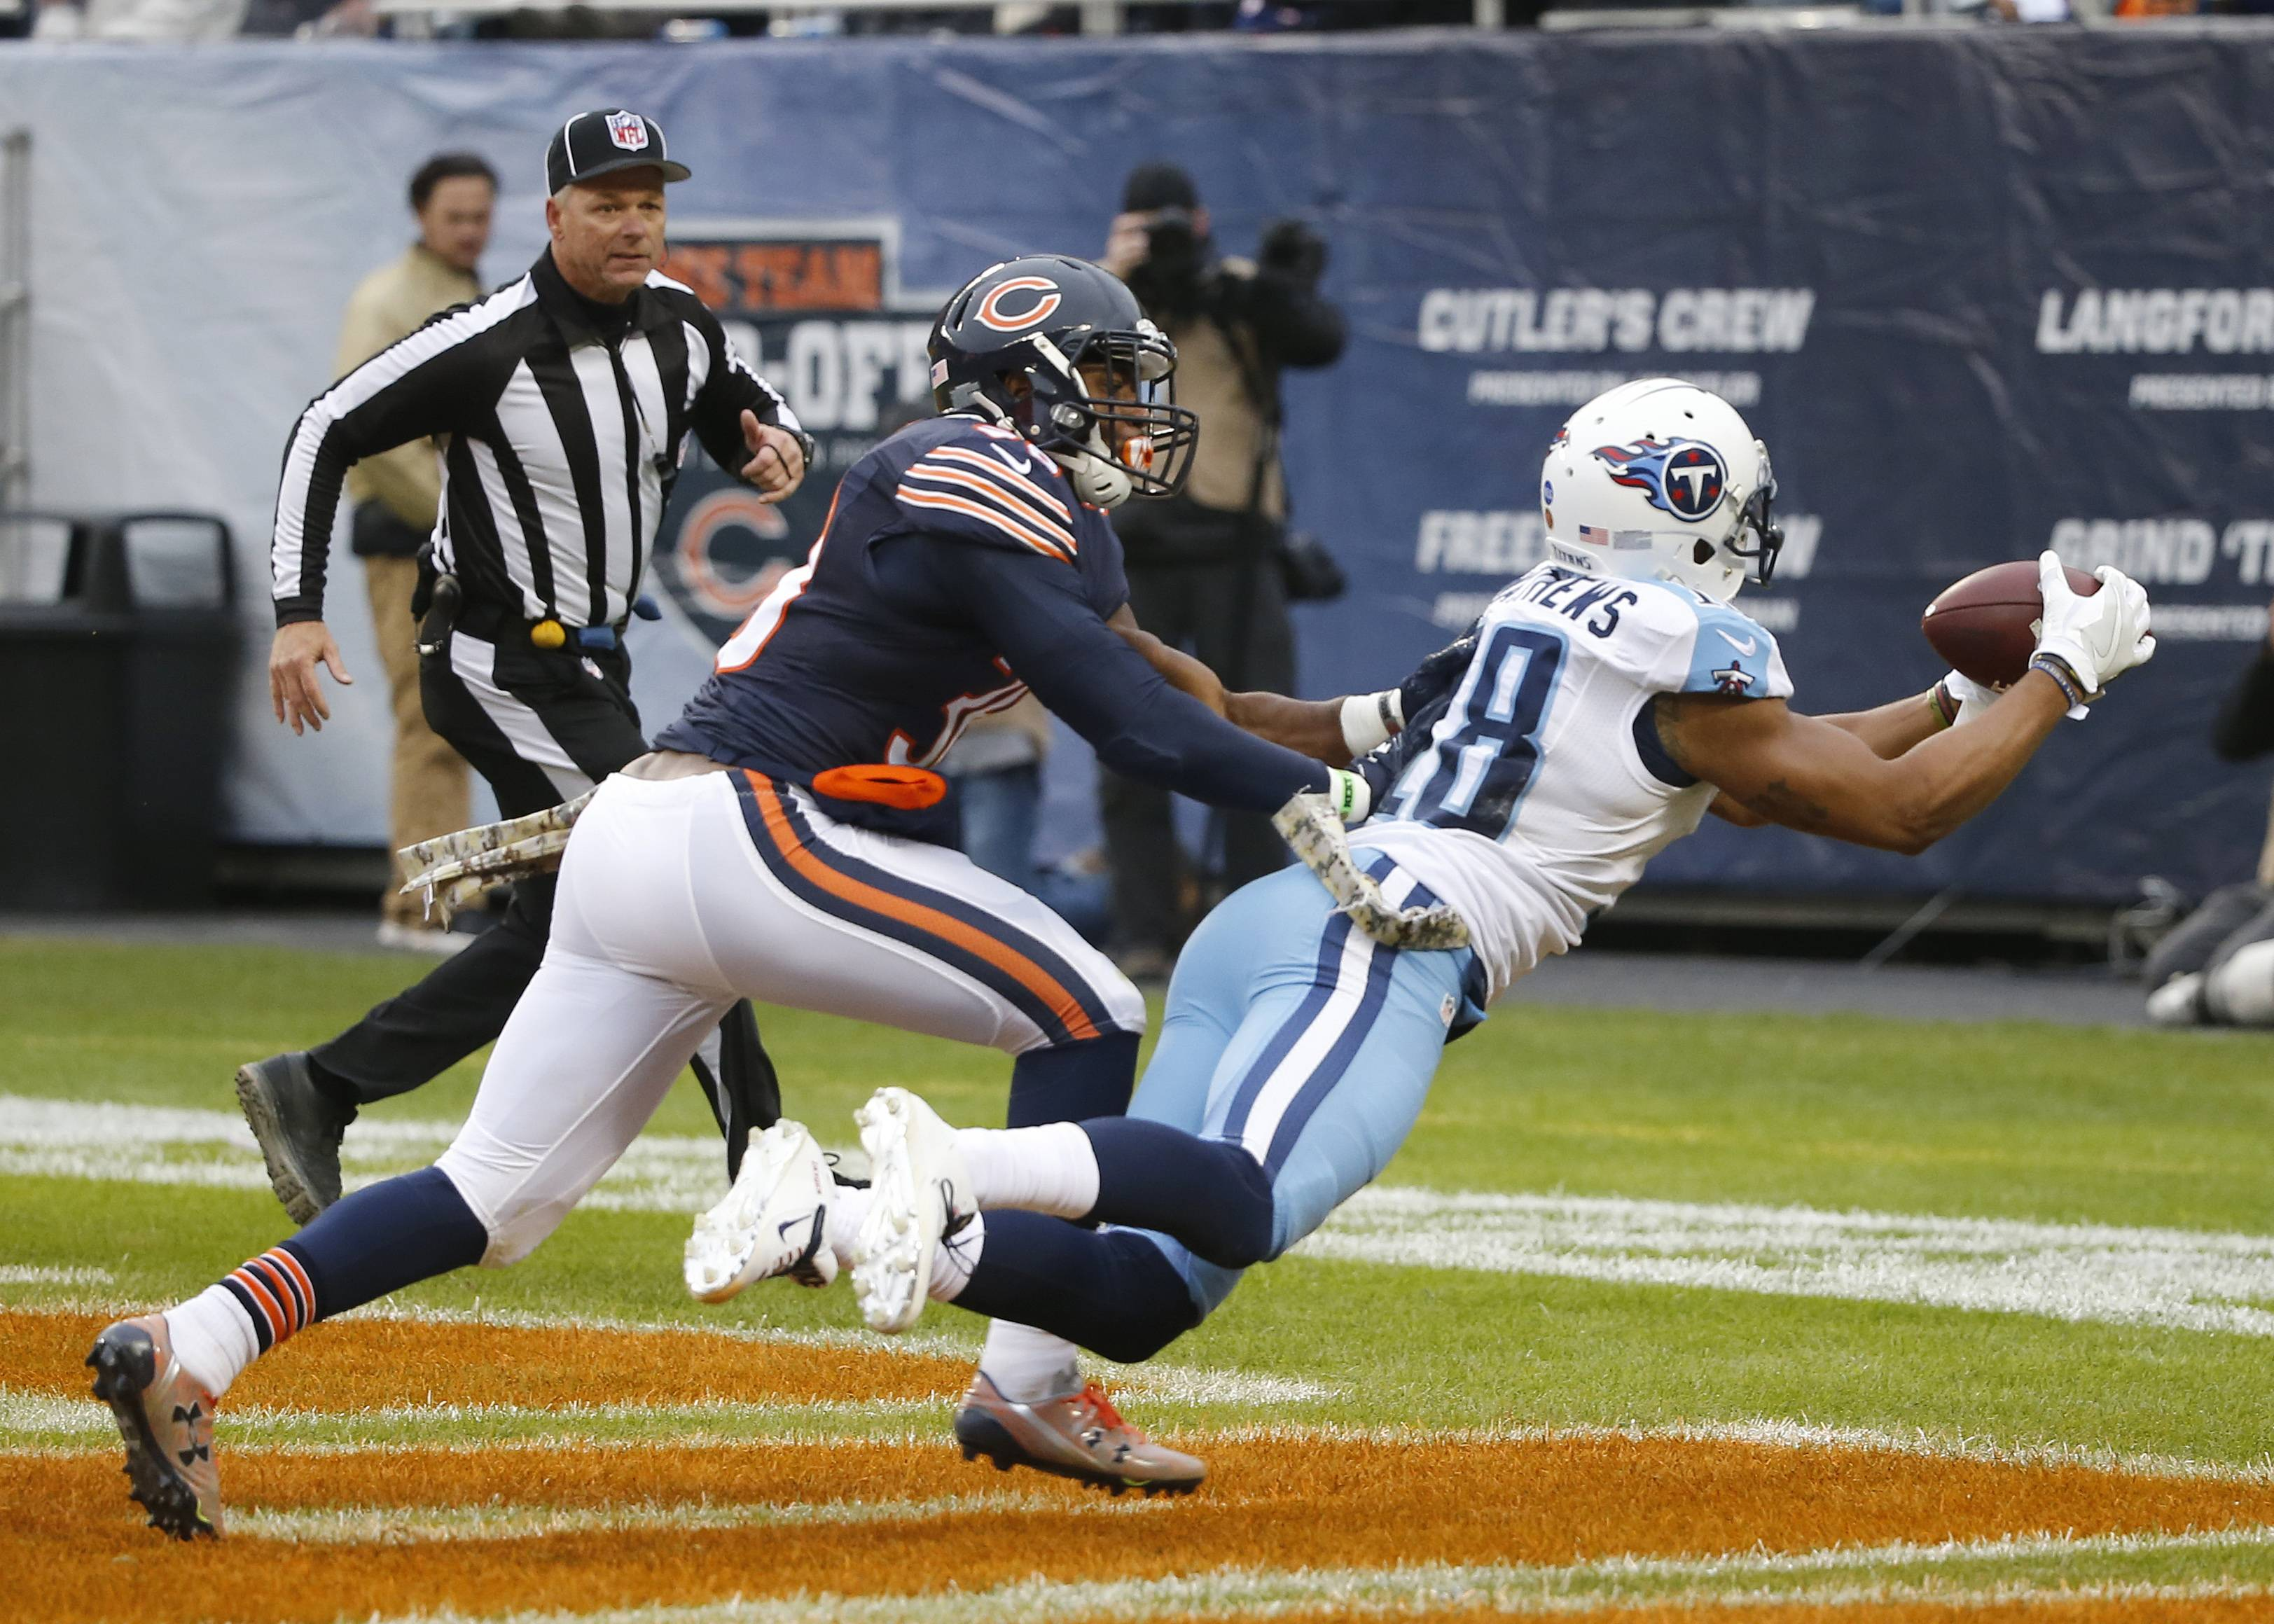 Chicago Bears free safety Adrian Amos, along with Harold Jones-Quartey and rookie Deon Bush, combined for all 32 starts at safety but managed just 10 pass breakups all season. The Bears secondary is a major focus going forward, general manager Ryan Pace said.